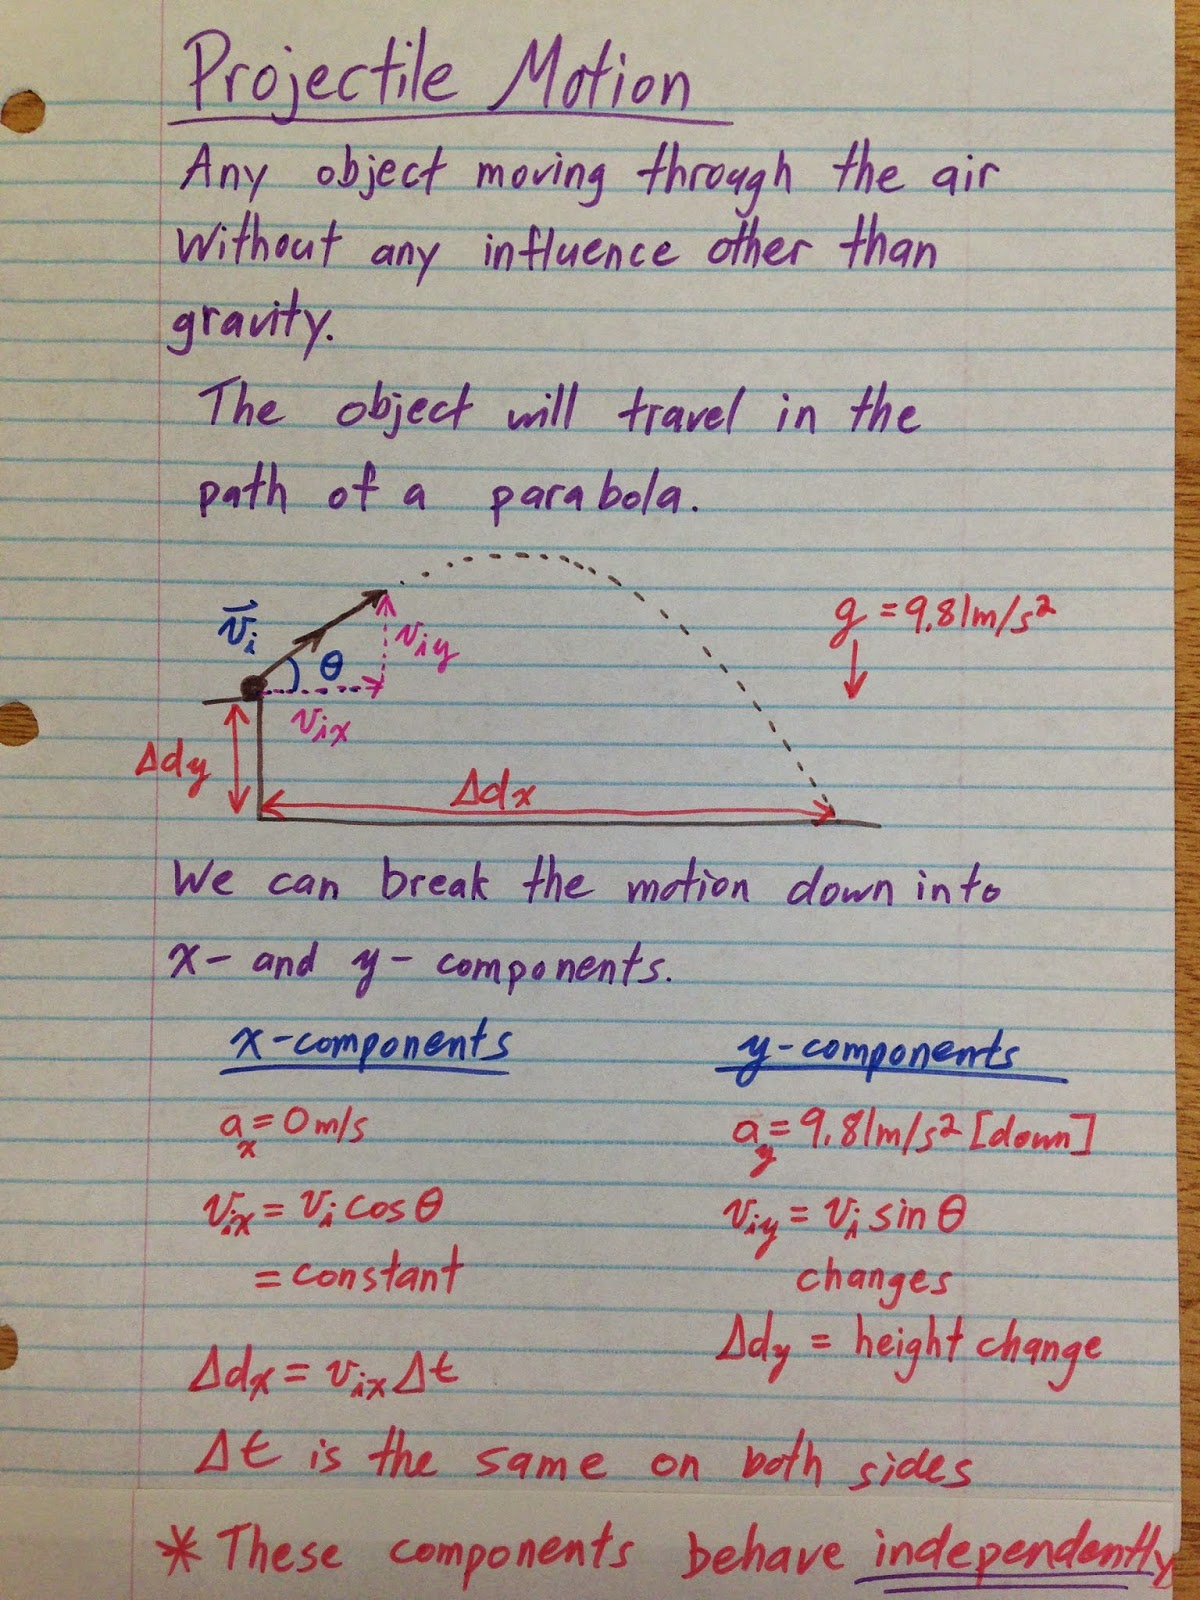 Grade 11 Physics Sept 24 Projectile Motion